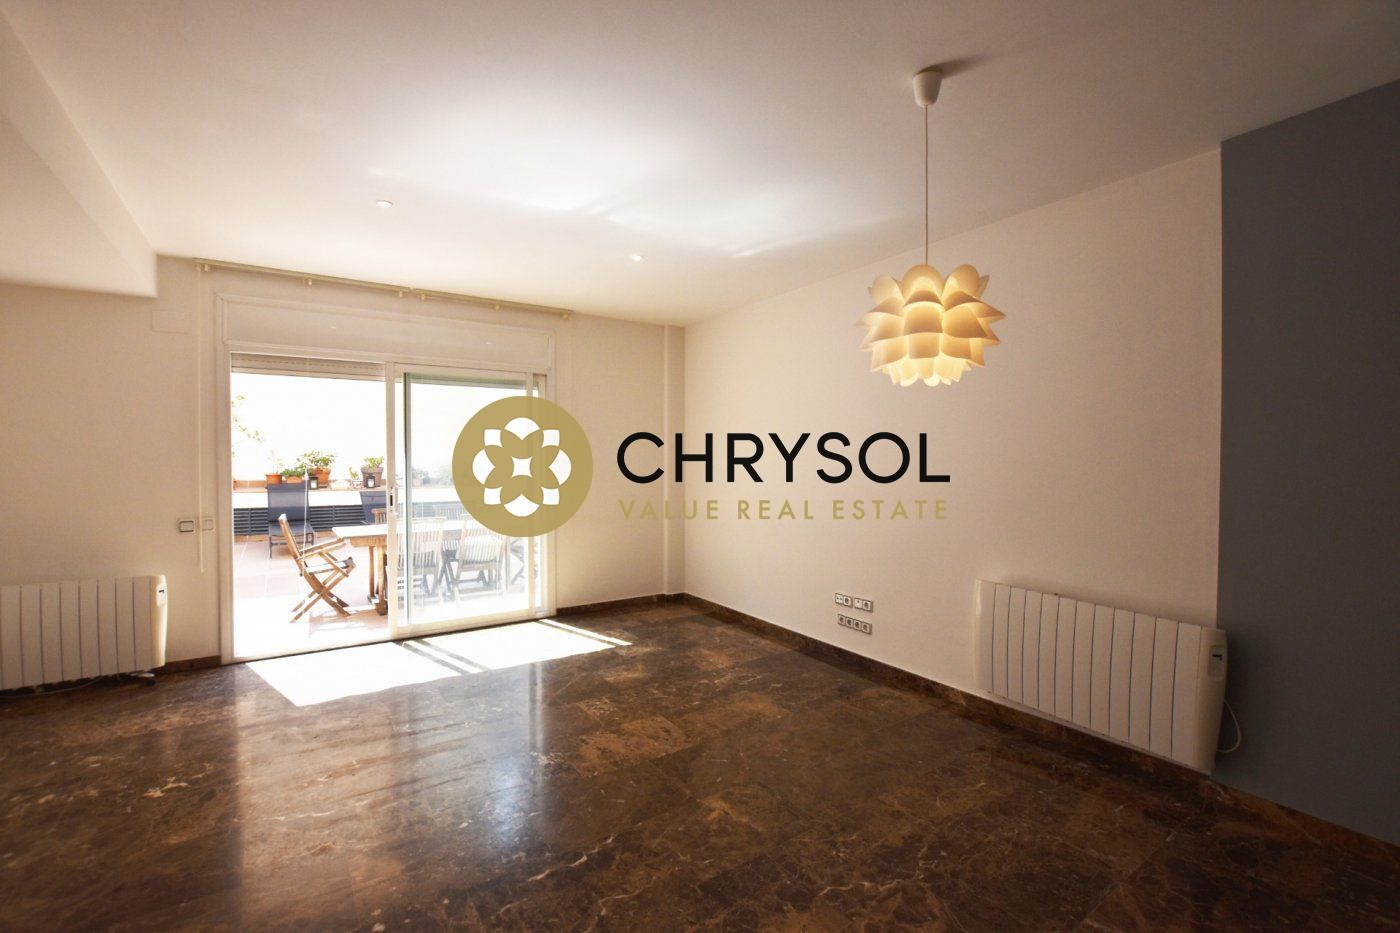 Photogallery - 27 - Chrysol Value